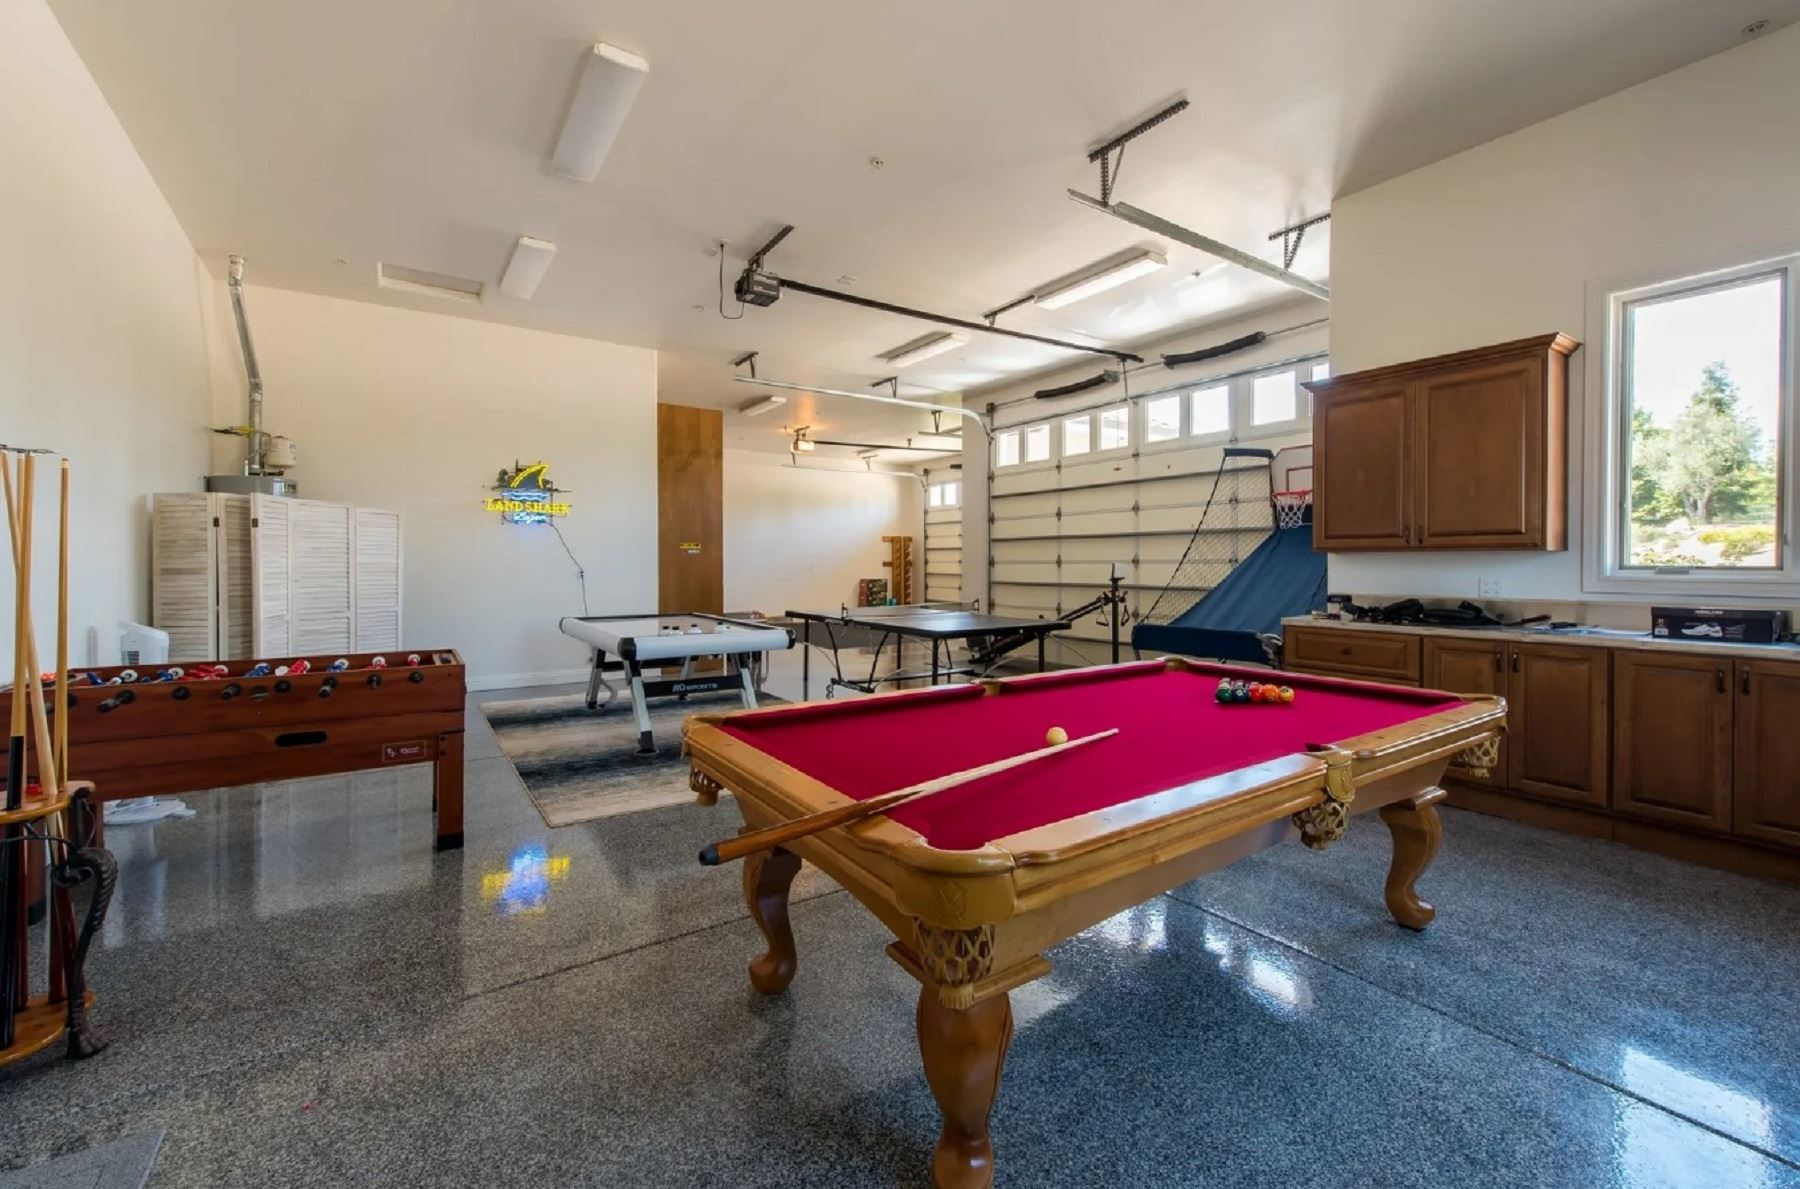 Frontier Farmhouse - Interior - Garage wtih a myriad of table games from pool to pingpong